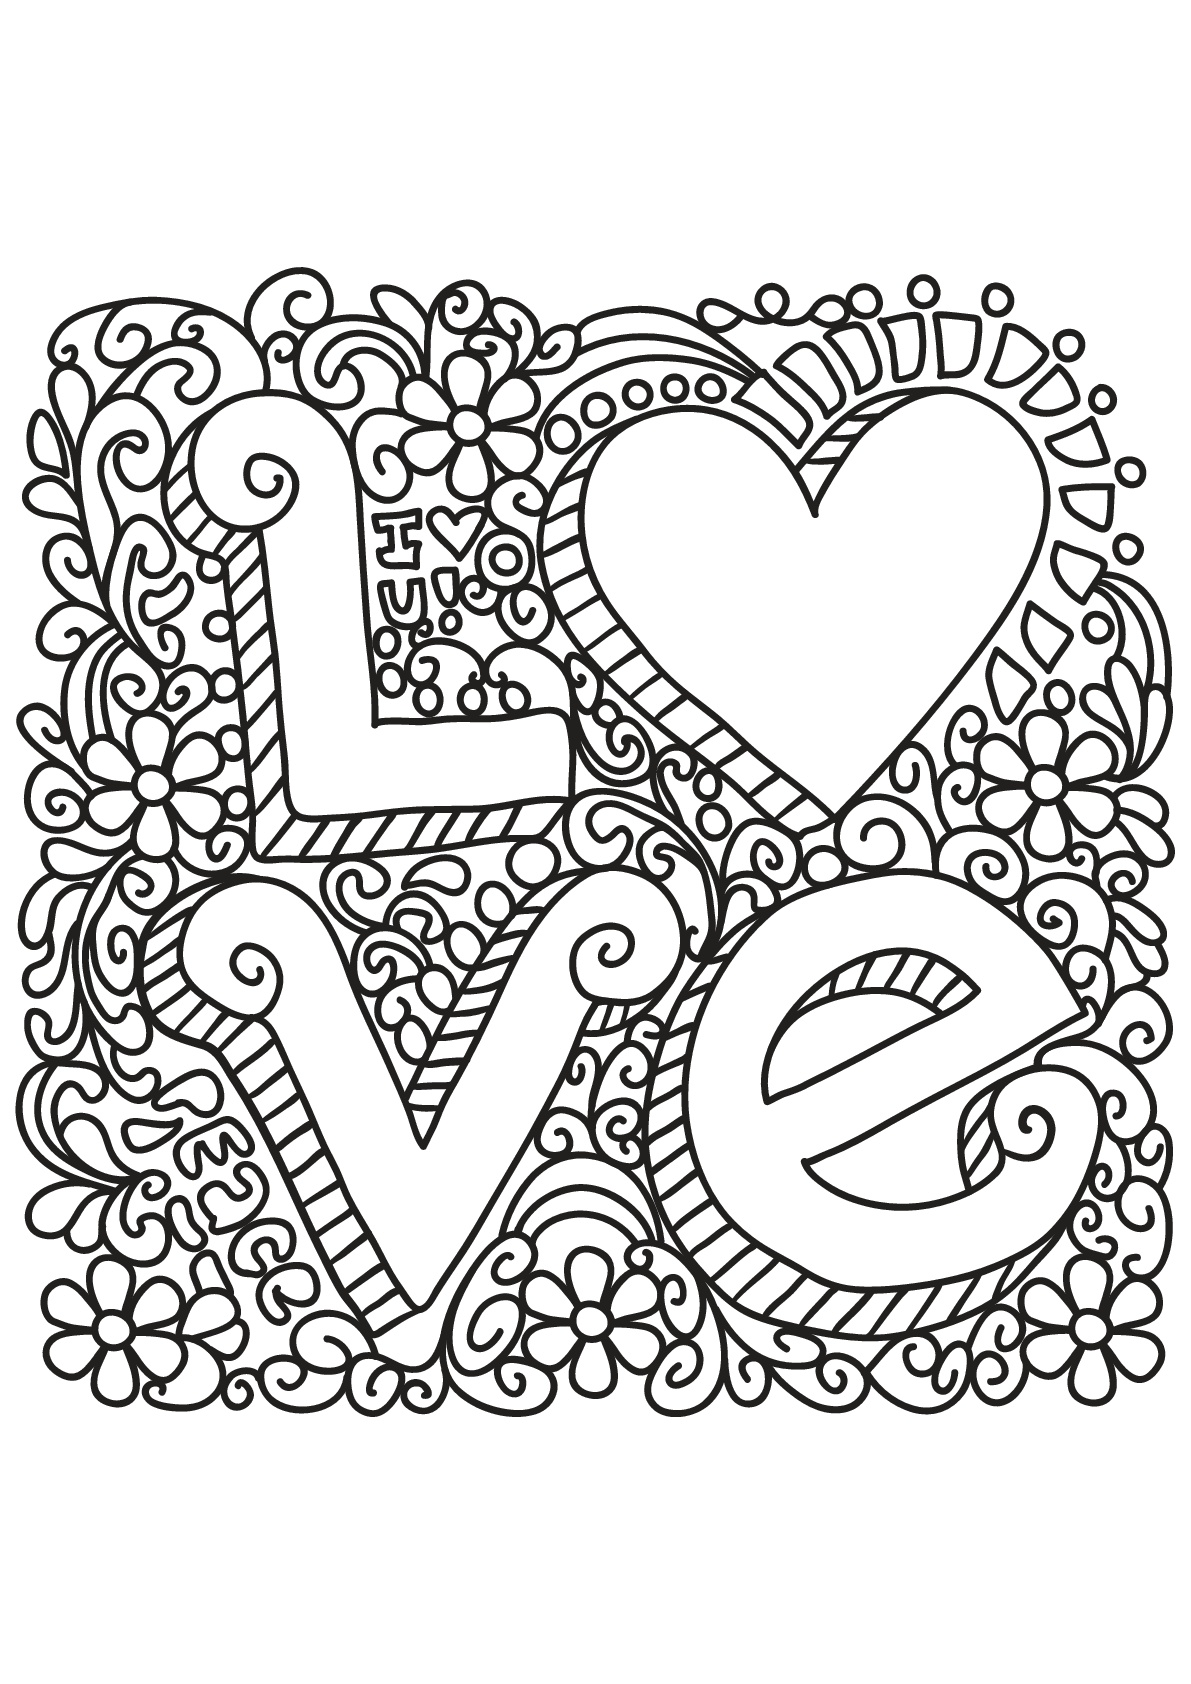 Free book quote 2 - Quotes Adult Coloring Pages